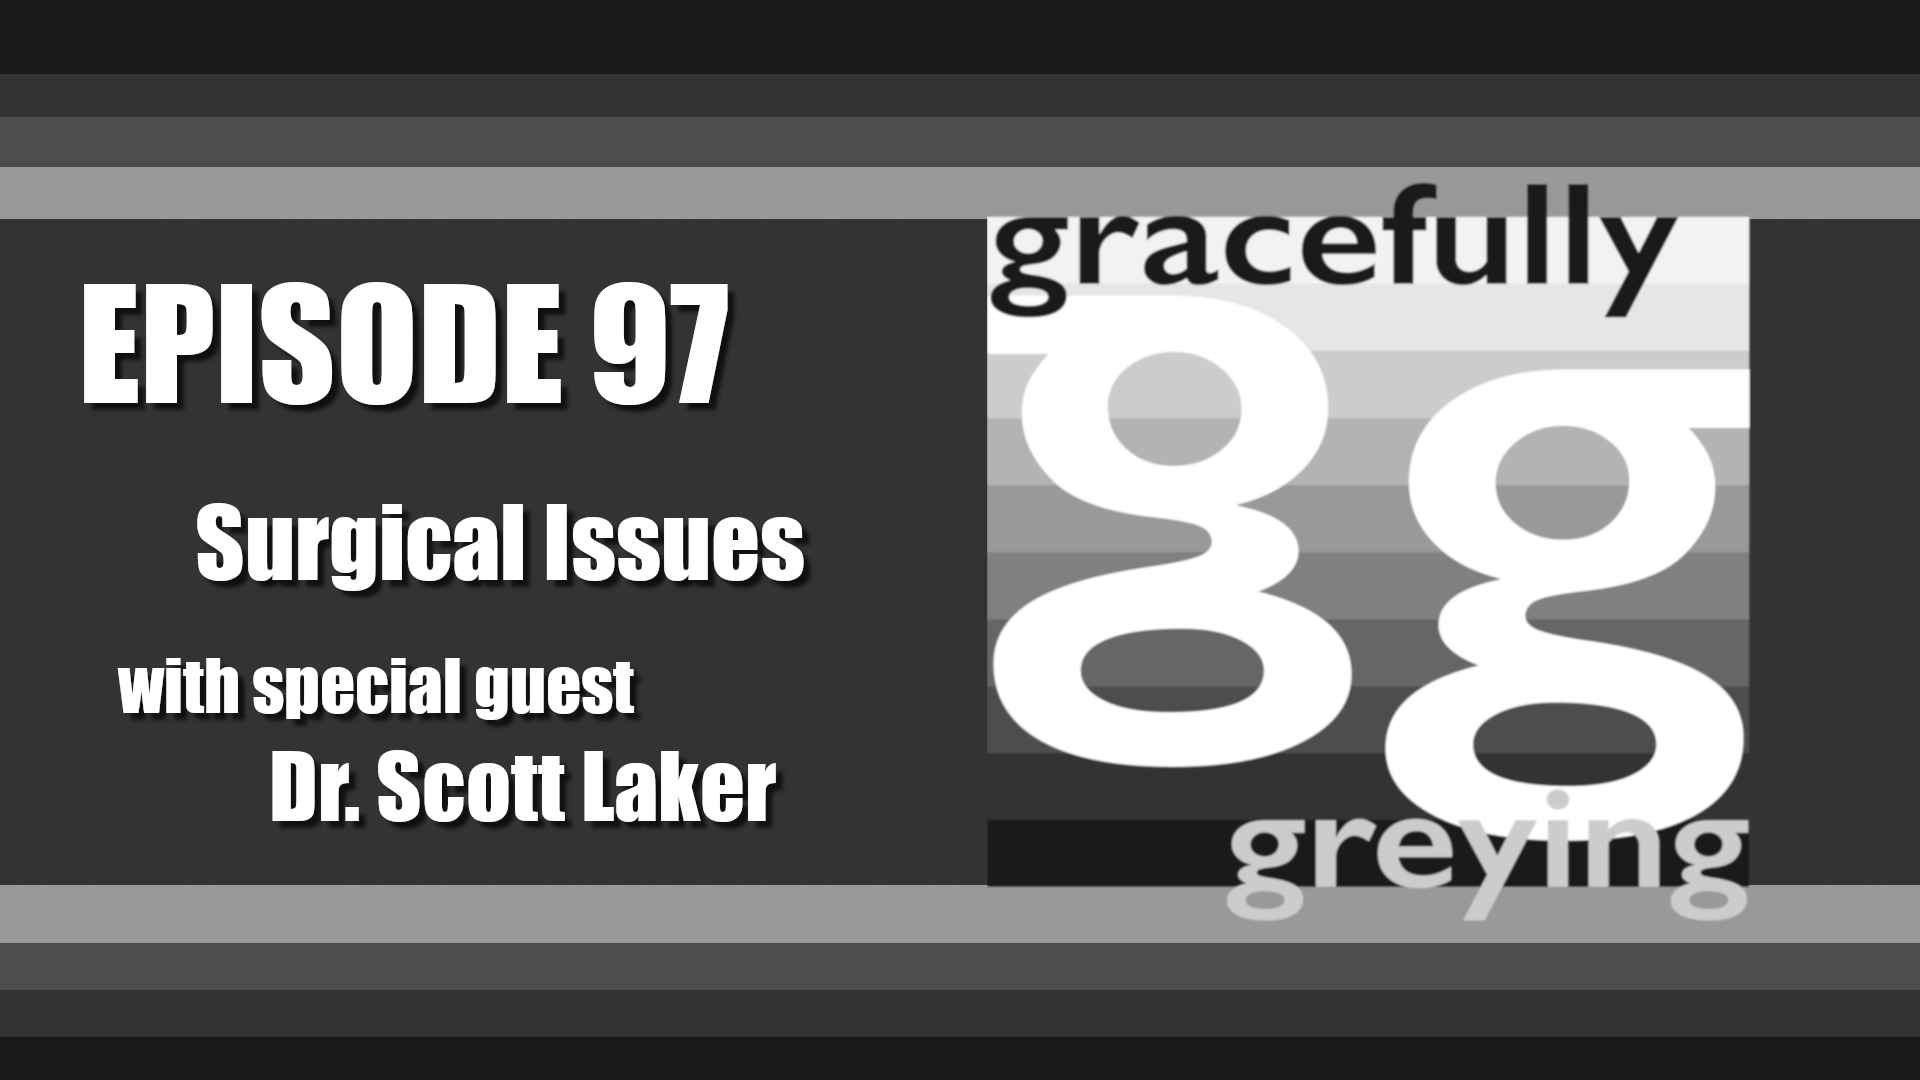 Gracefully Greying - Episode 97 - Surgical Issues